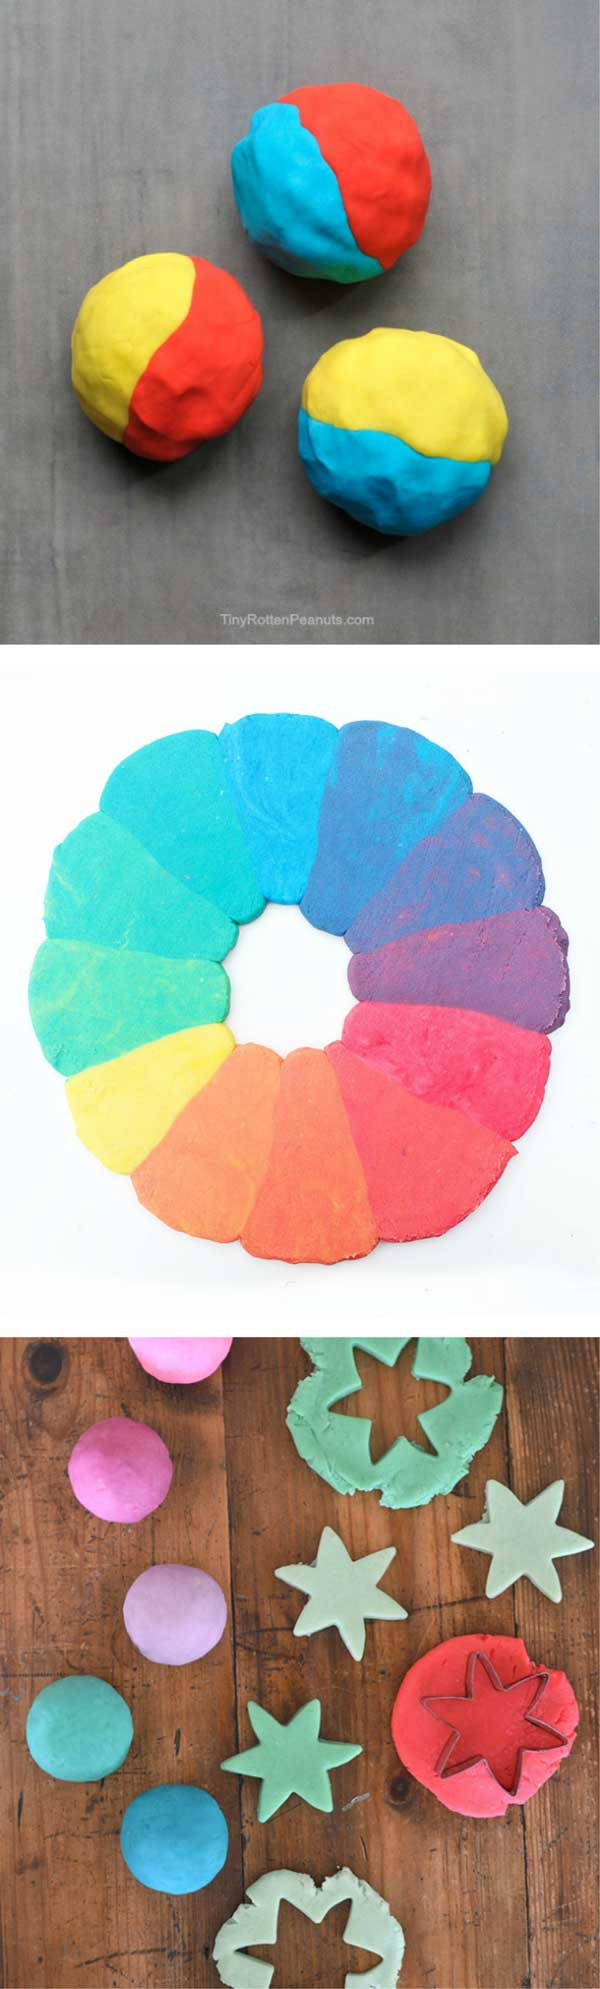 Explore color theory by creating a rainbow playdough color wheel and two other color focused playdough activities.